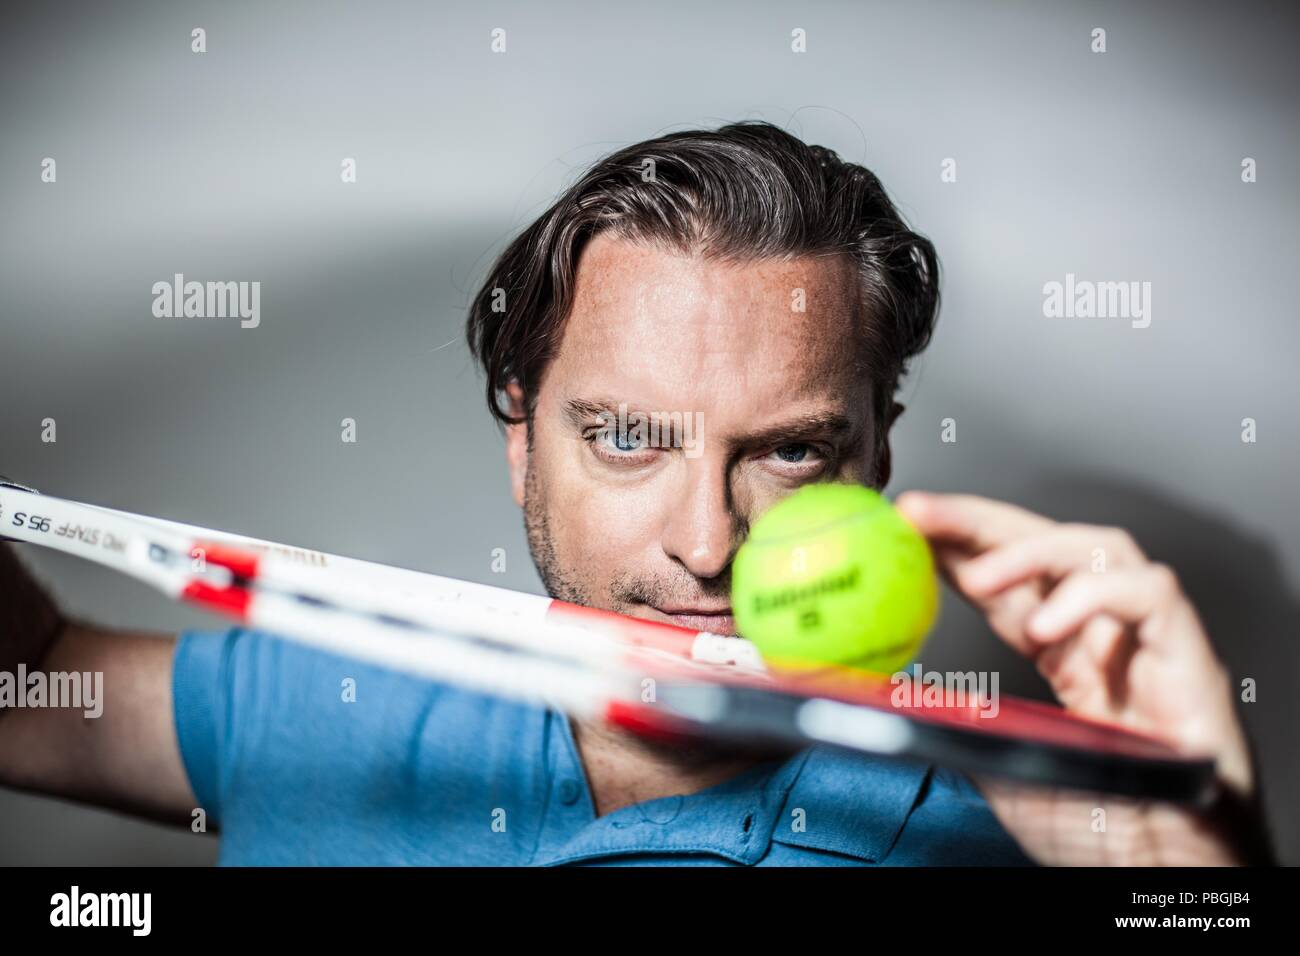 portrait of a handsome man with a tennis racket Stock Photo